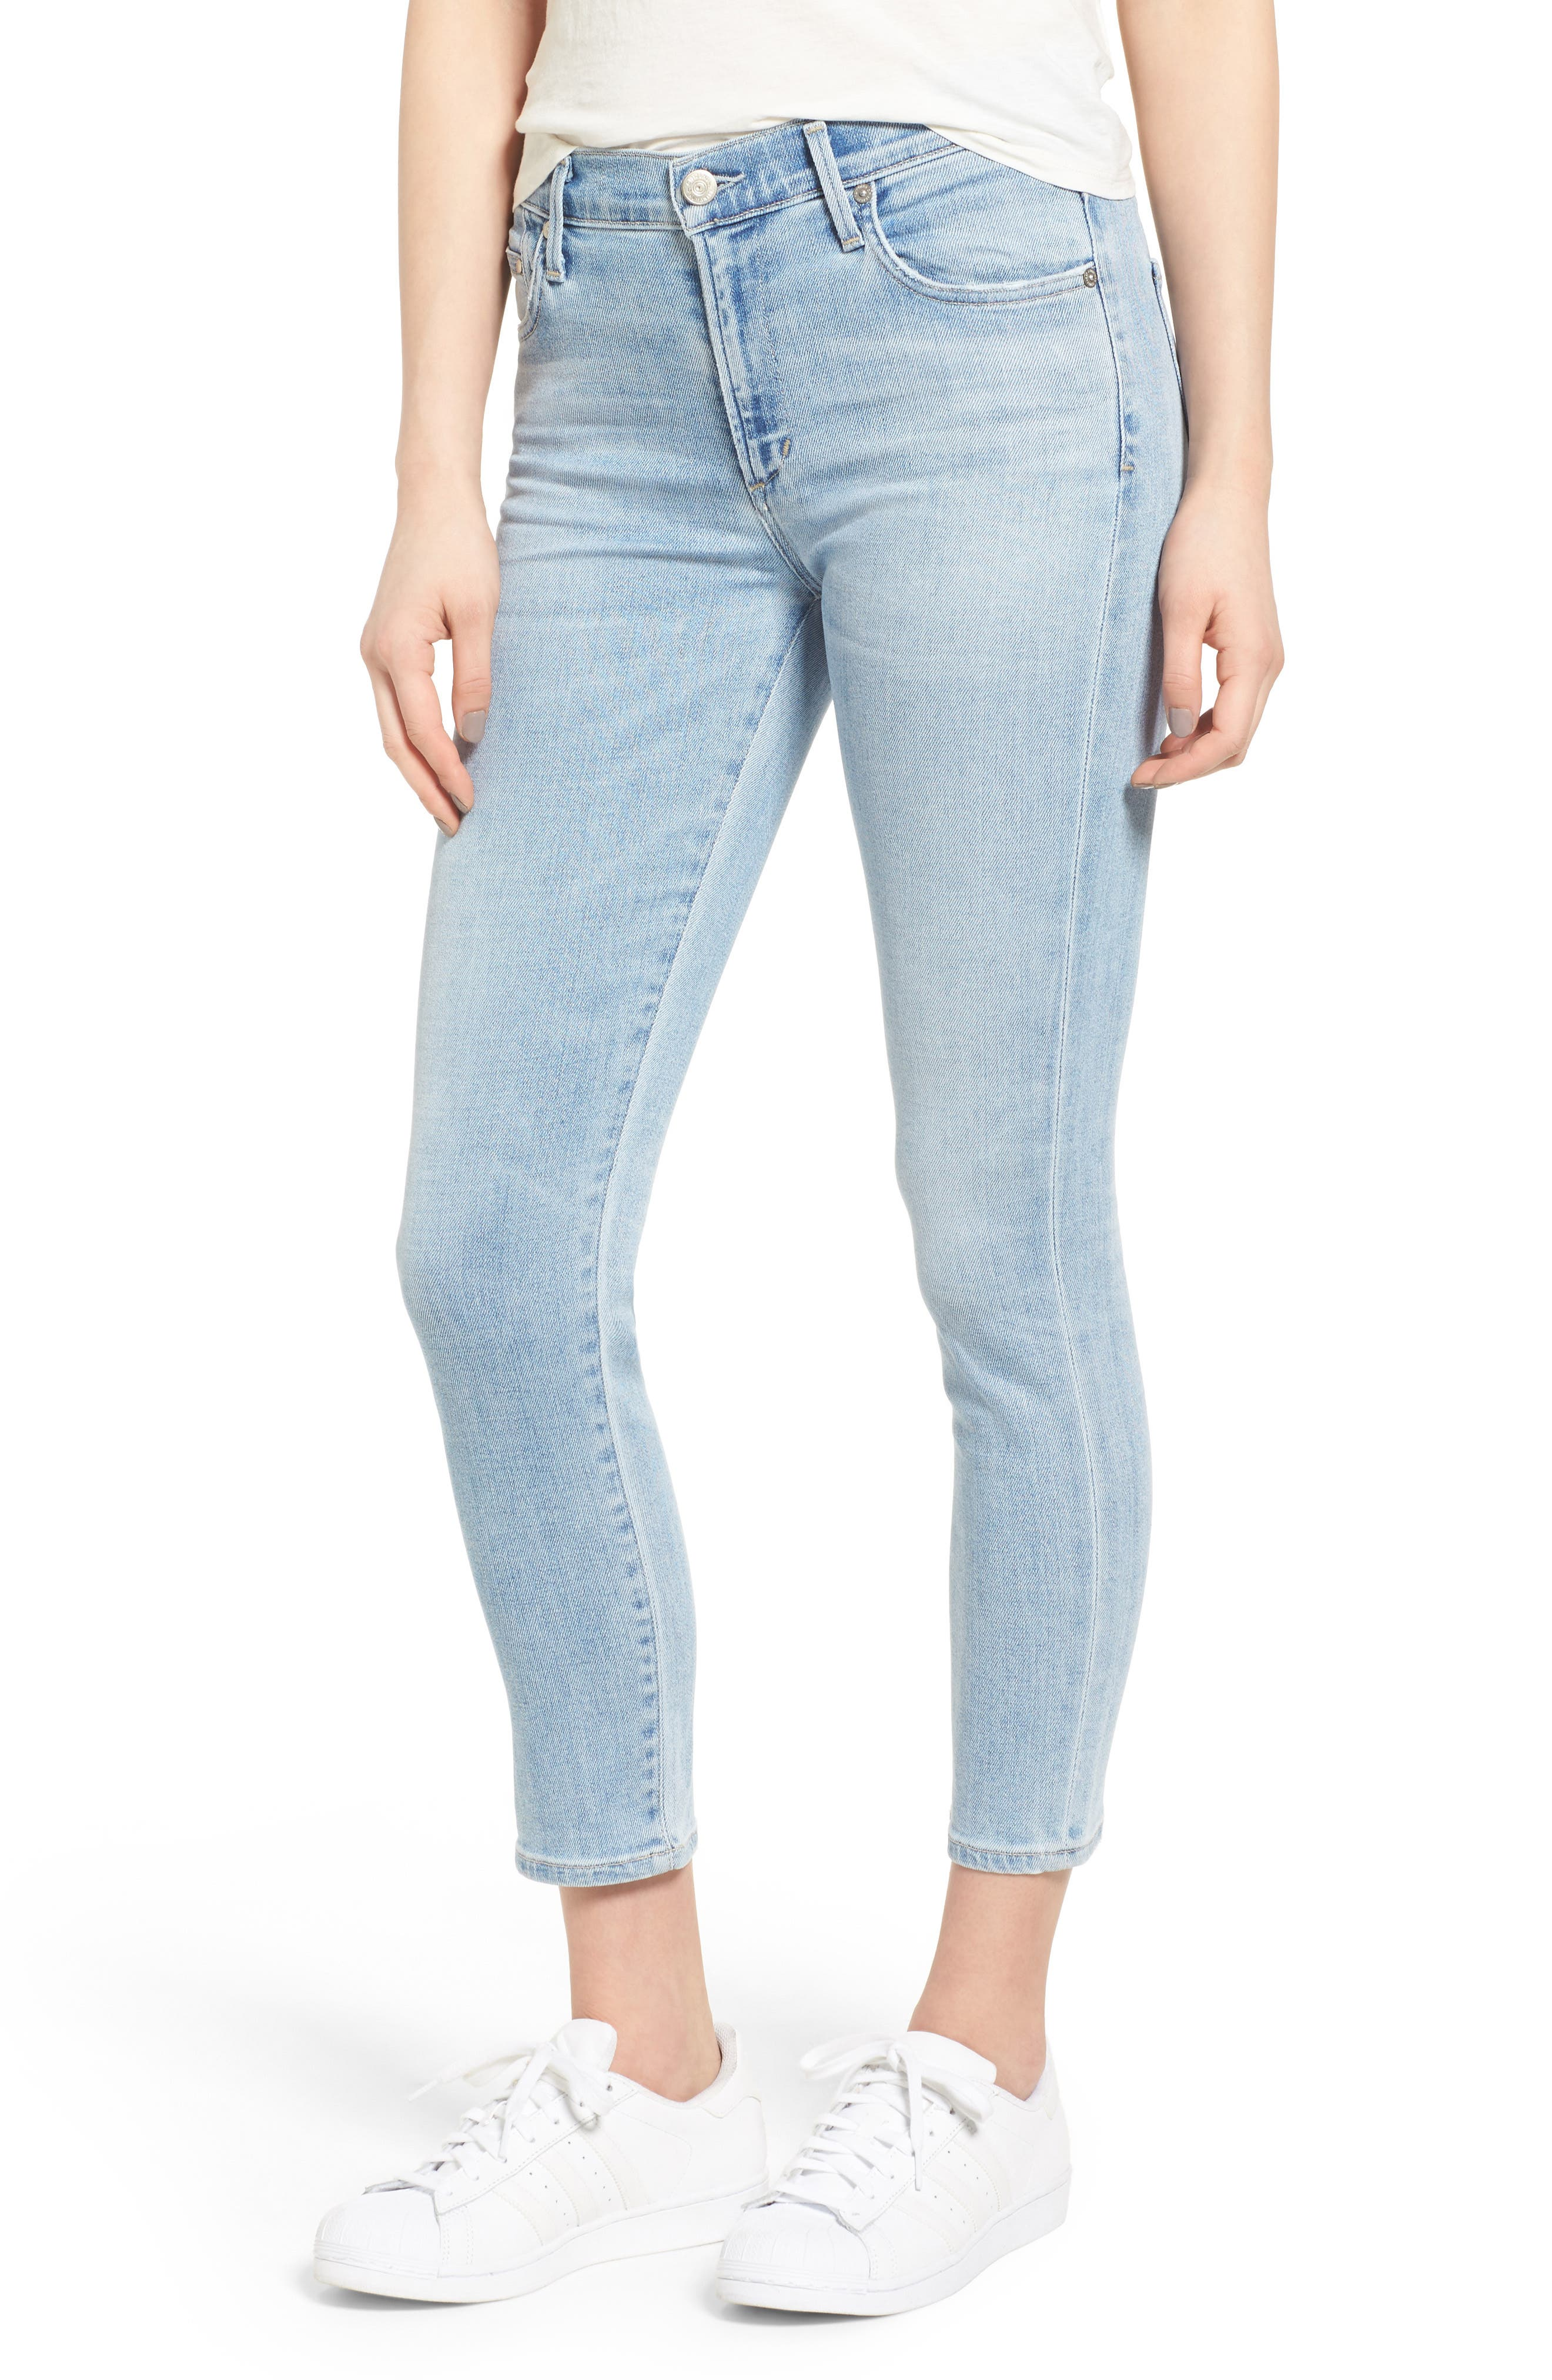 Alternate Image 1 Selected - Citizens of Humanity Rocket High Waist Crop Skinny Jeans (Oracle Blue)